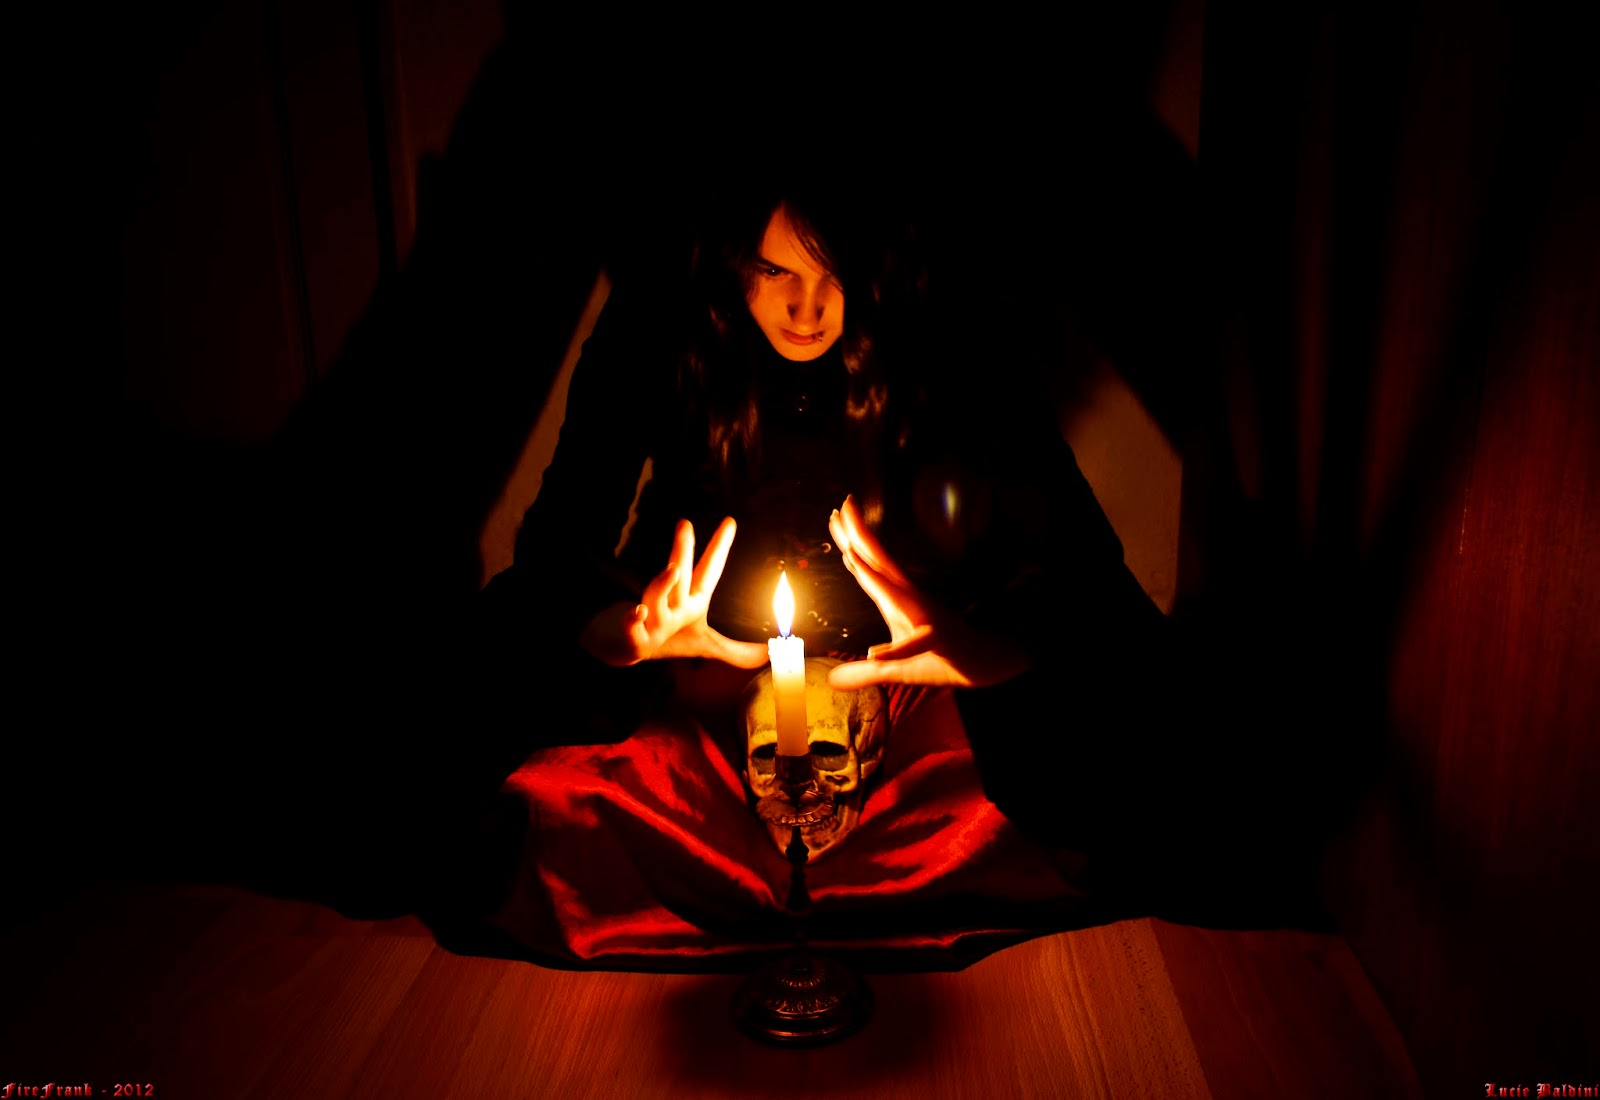 Black Magic Has Traditionally Referred To The Use Of Supernatural Powers Or For Evil And Selfish Purposes With Respect Left Hand Path